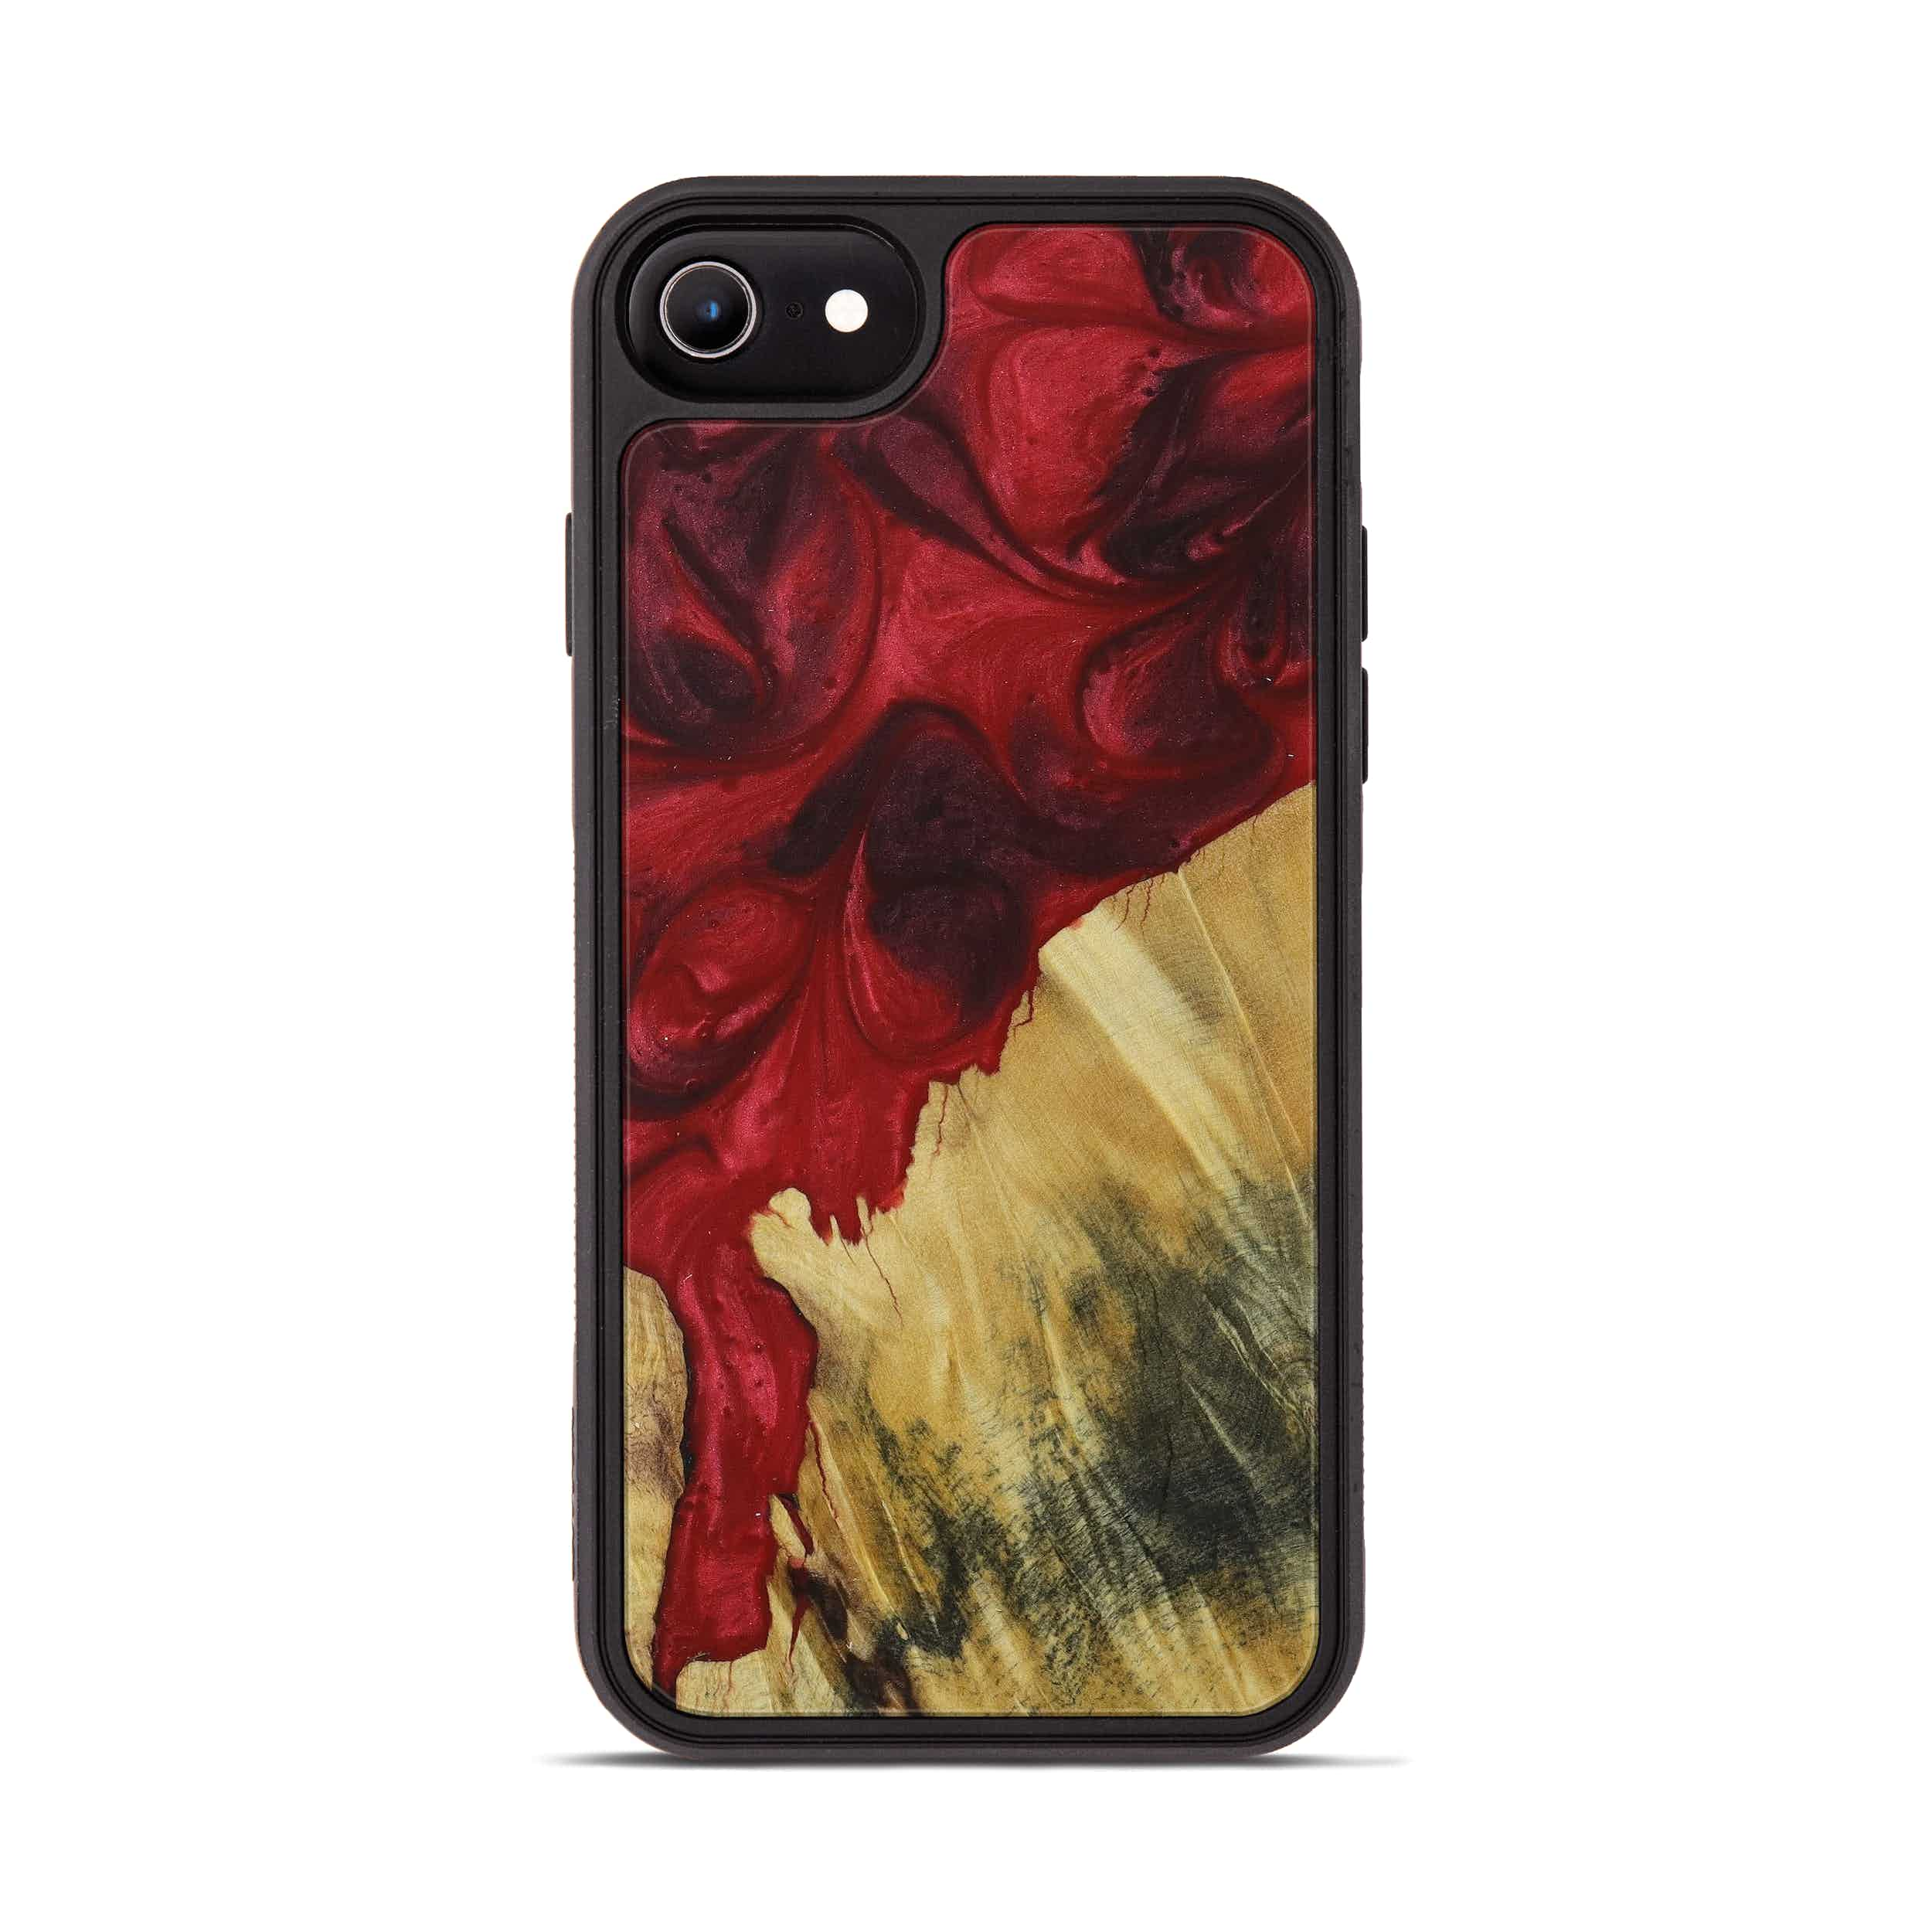 iPhone 6s Wood+Resin Phone Case - Onette (Dark Red, 395927)